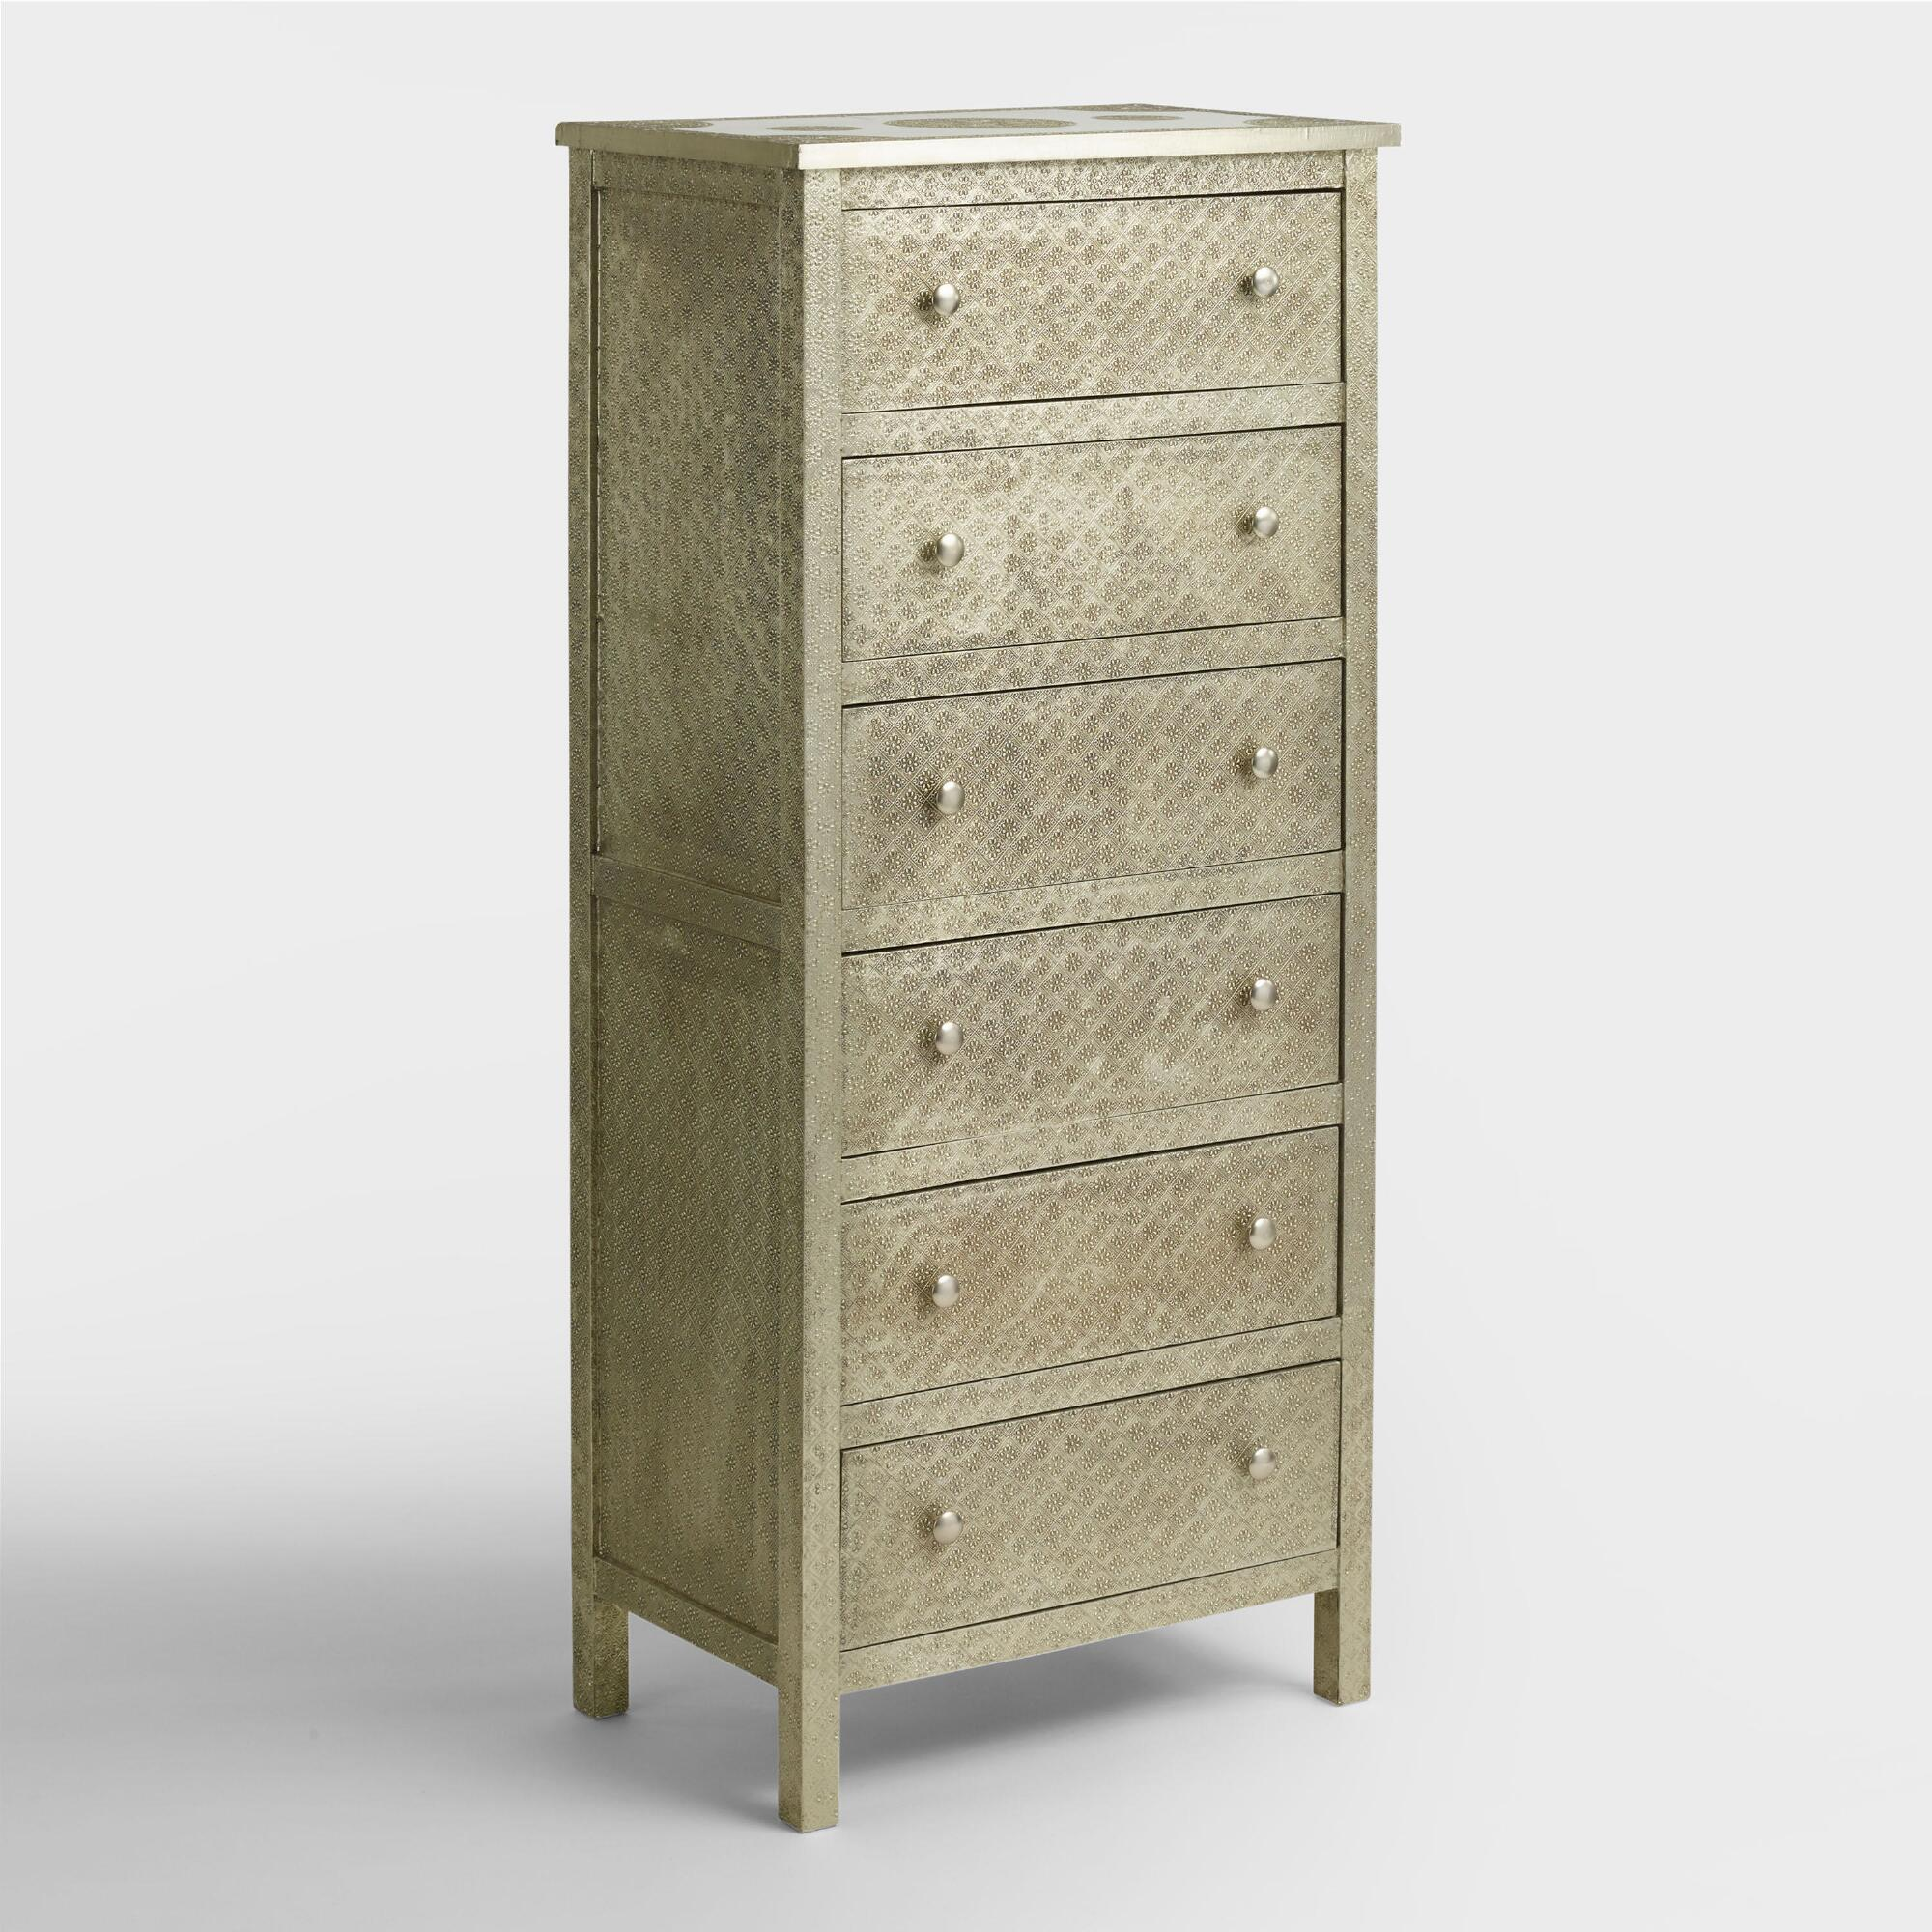 bedroom storage furniture. Embossed Metal Kiran Tall Dresser Dressers  Chests and Bedroom Storage World Market